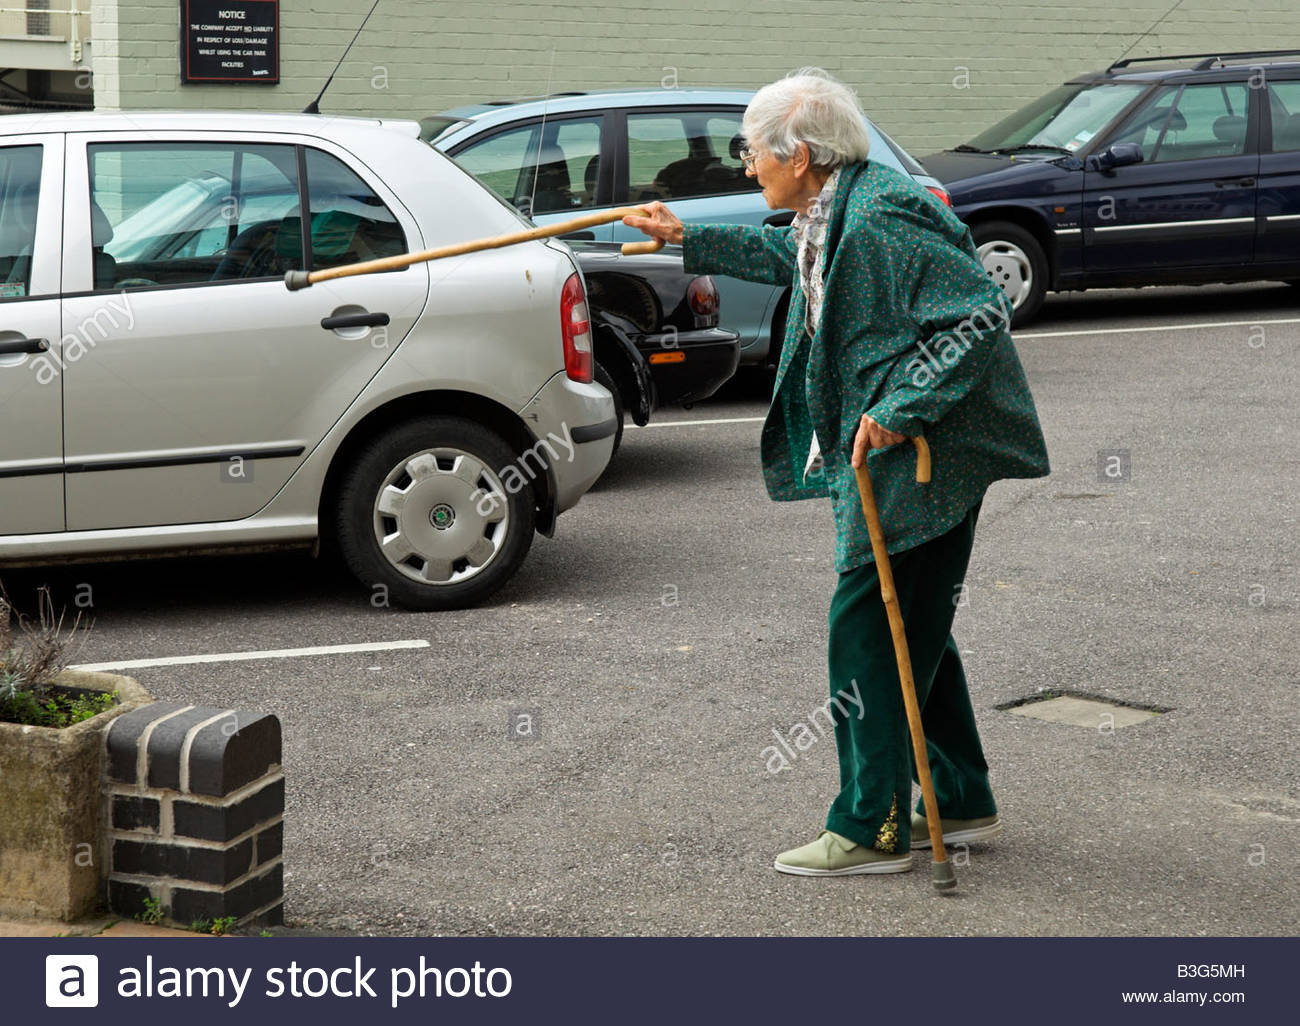 active-elderly-english-92-year-old-woman-walking-in-car-park-with-B3G5MH.jpg